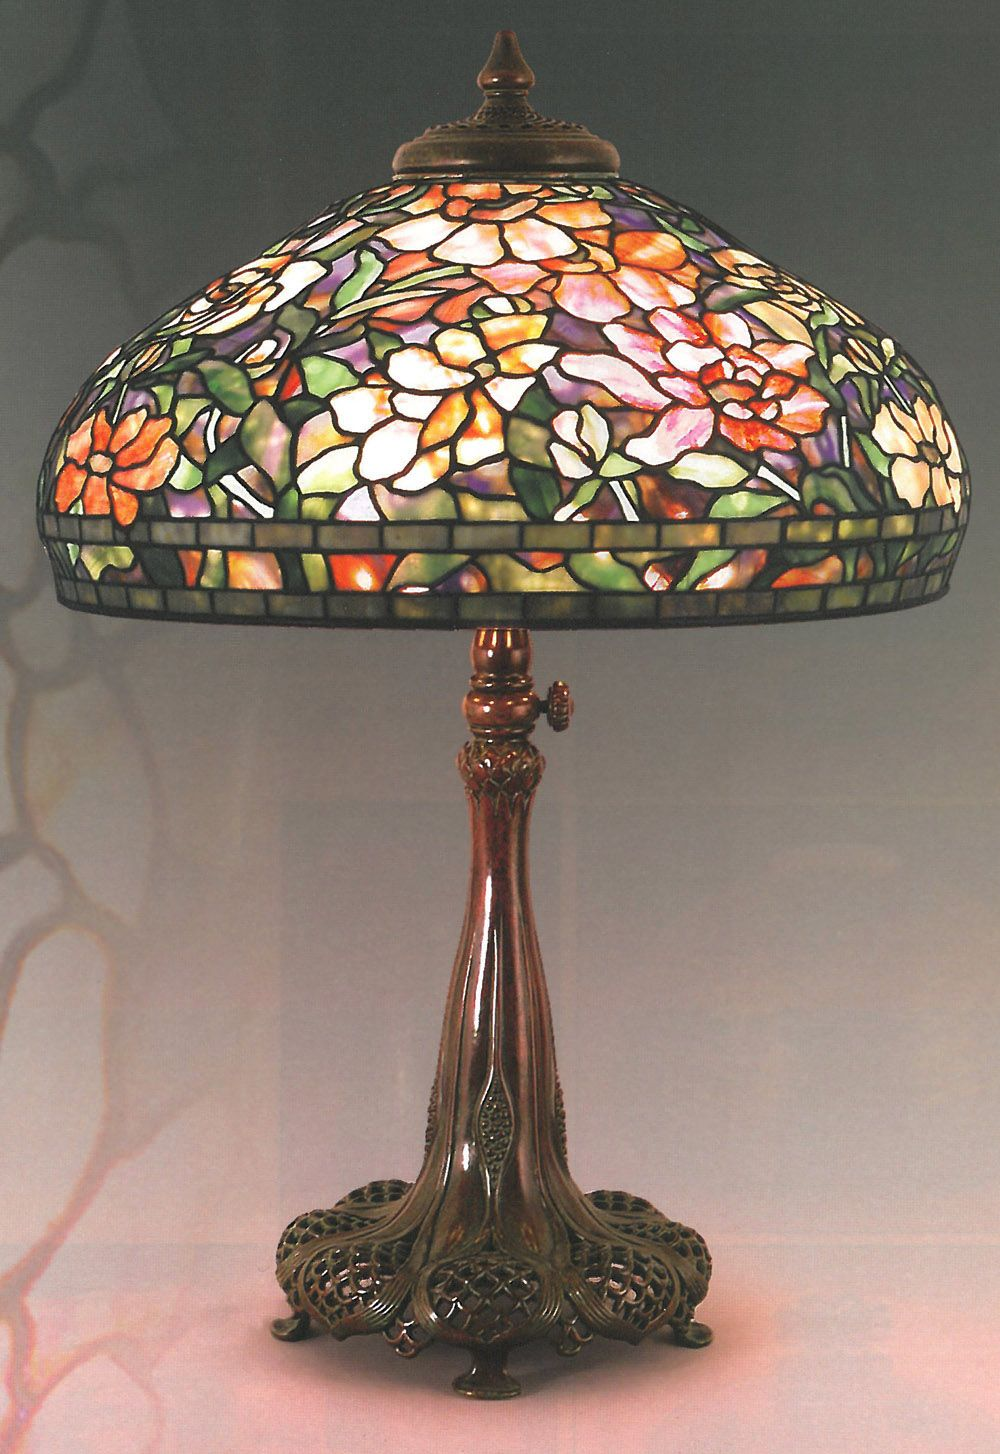 Authentic Tiffany Lamp In The Peony Pattern On A Very Nice